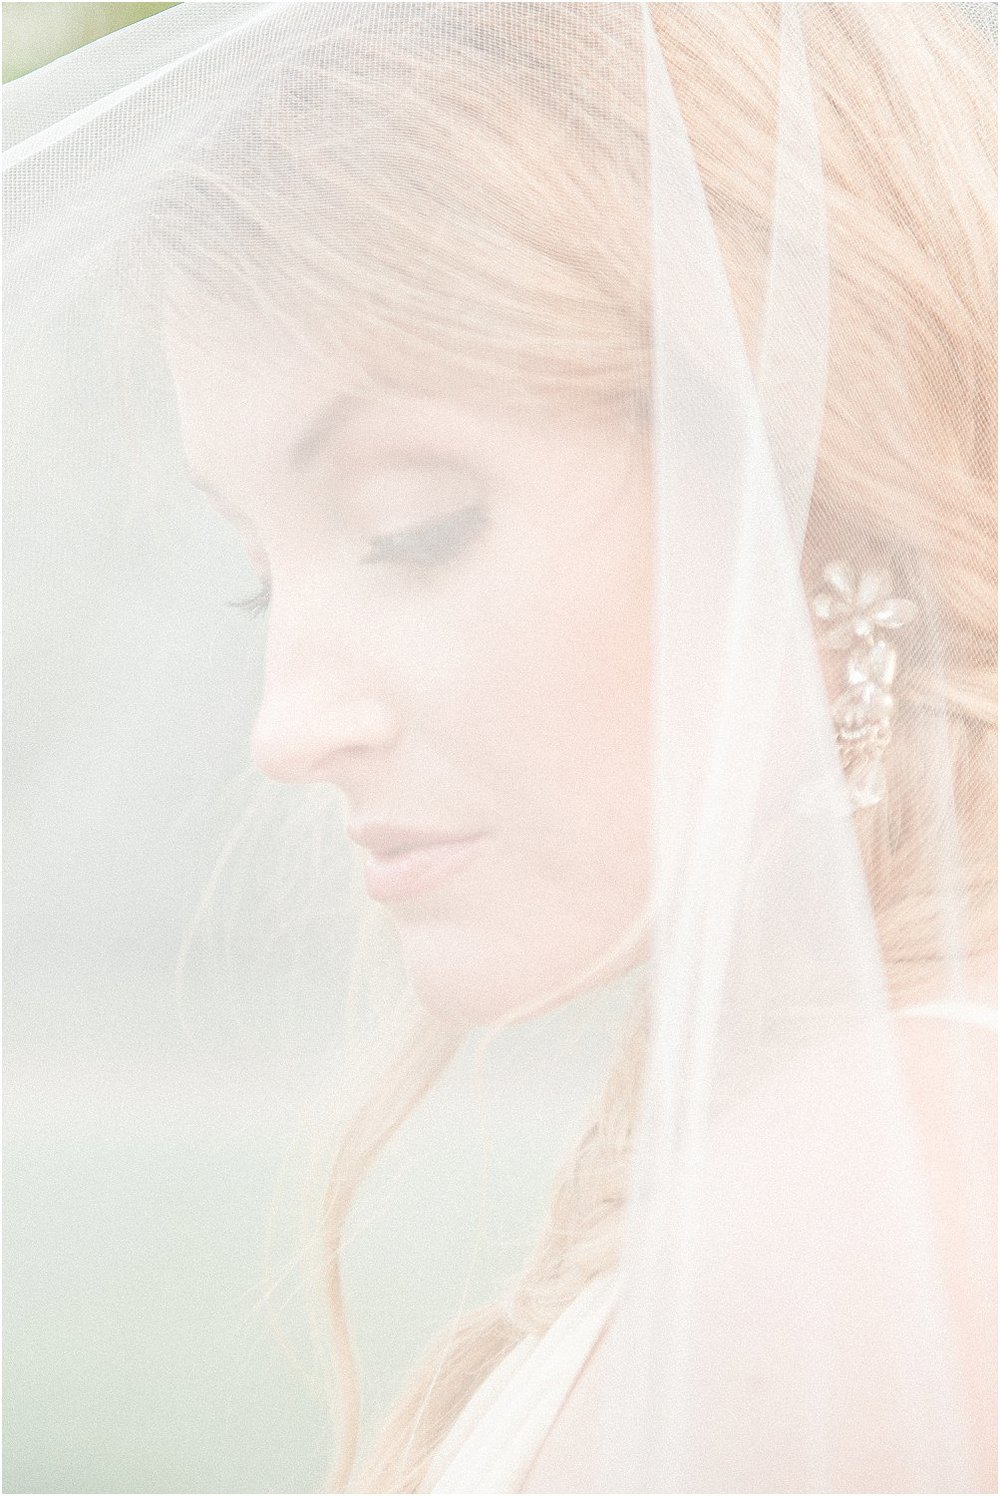 JuicebeatsPhotography_Fineartwedding